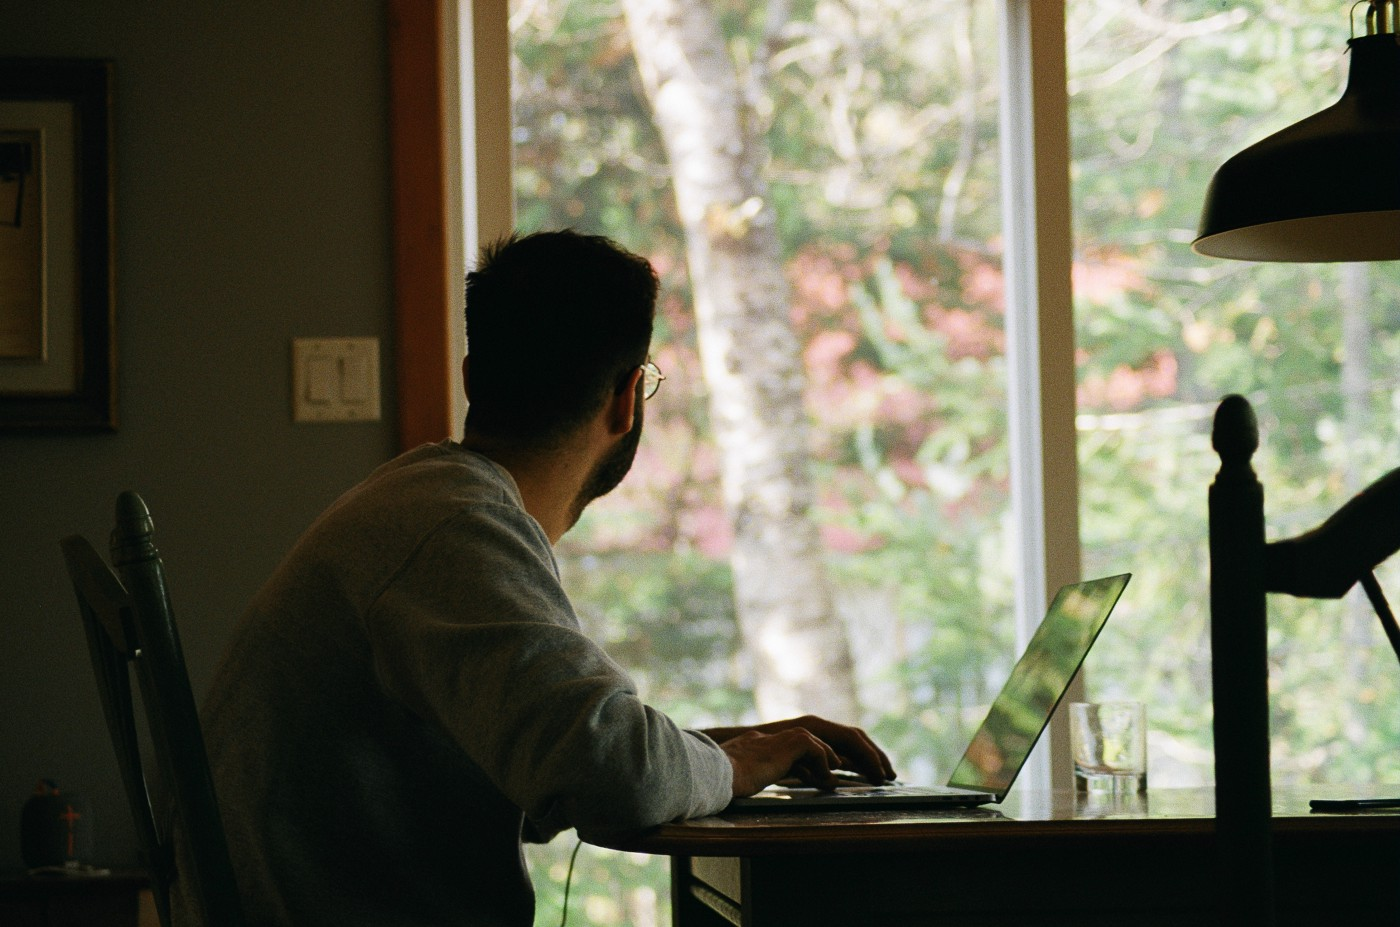 A guy working from home. Looking out of the window, involved in deep thought.